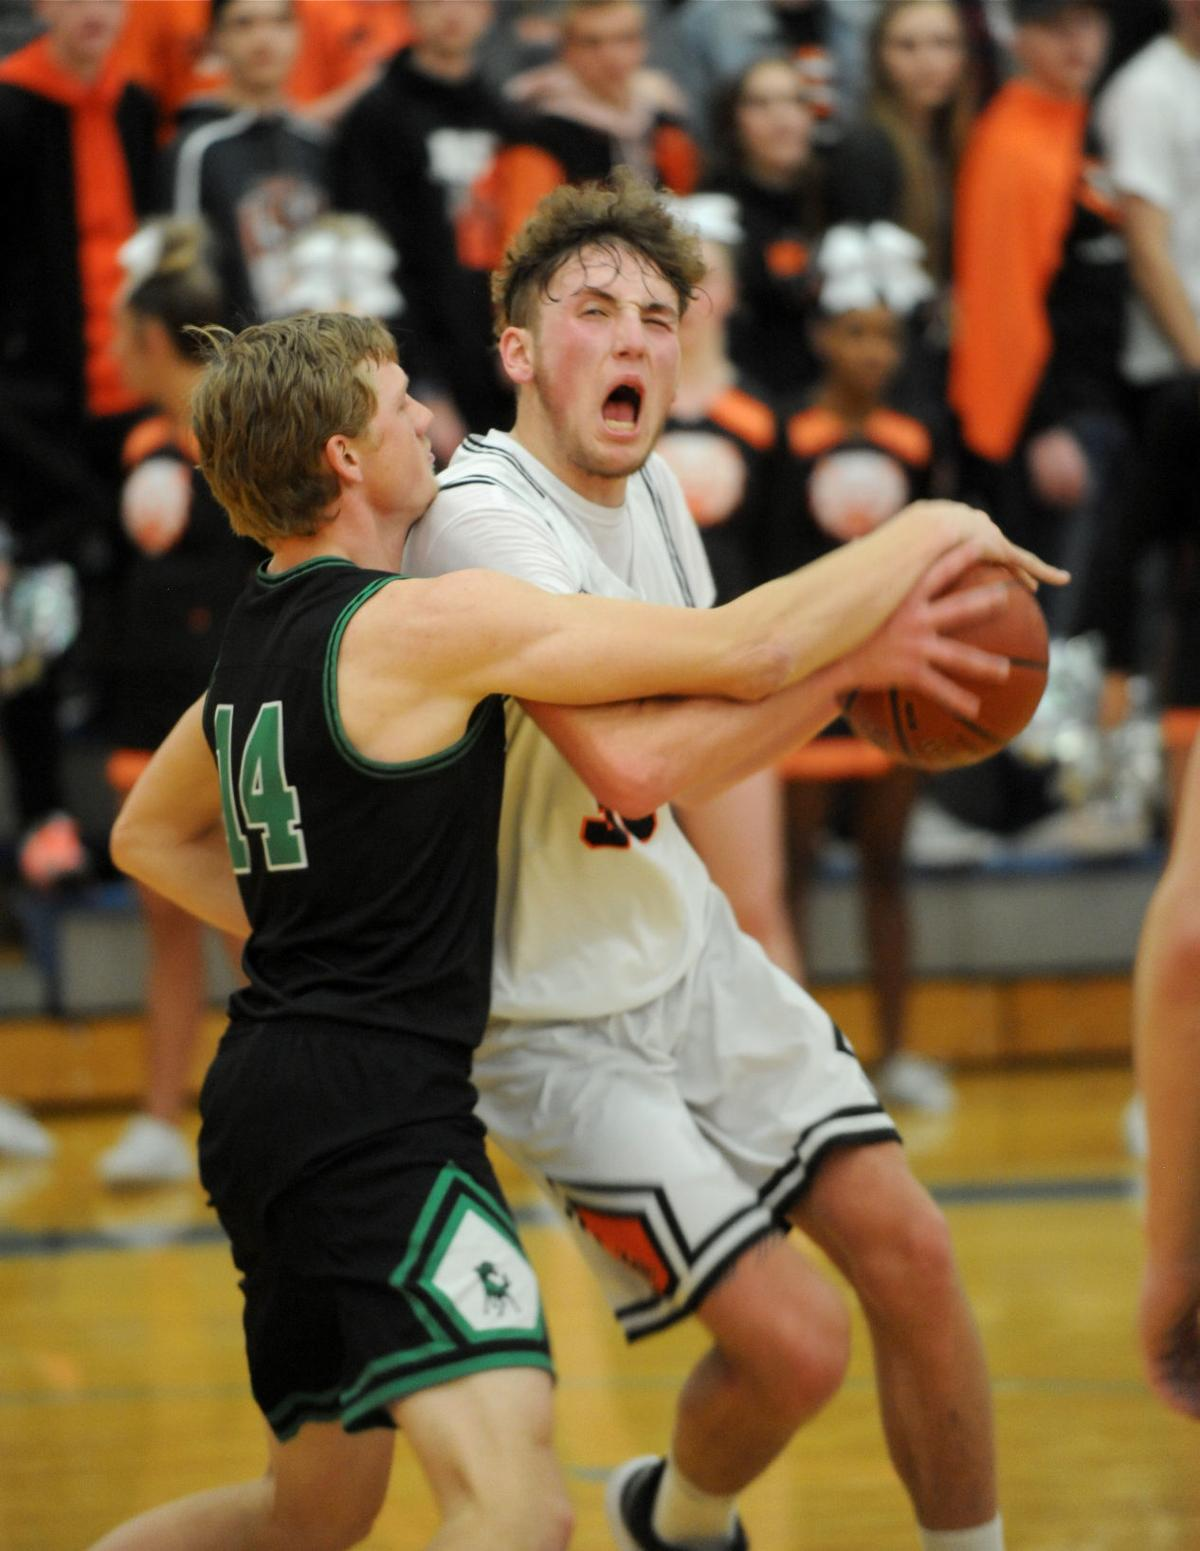 Idaho Falls vs Blackfoot district basketball